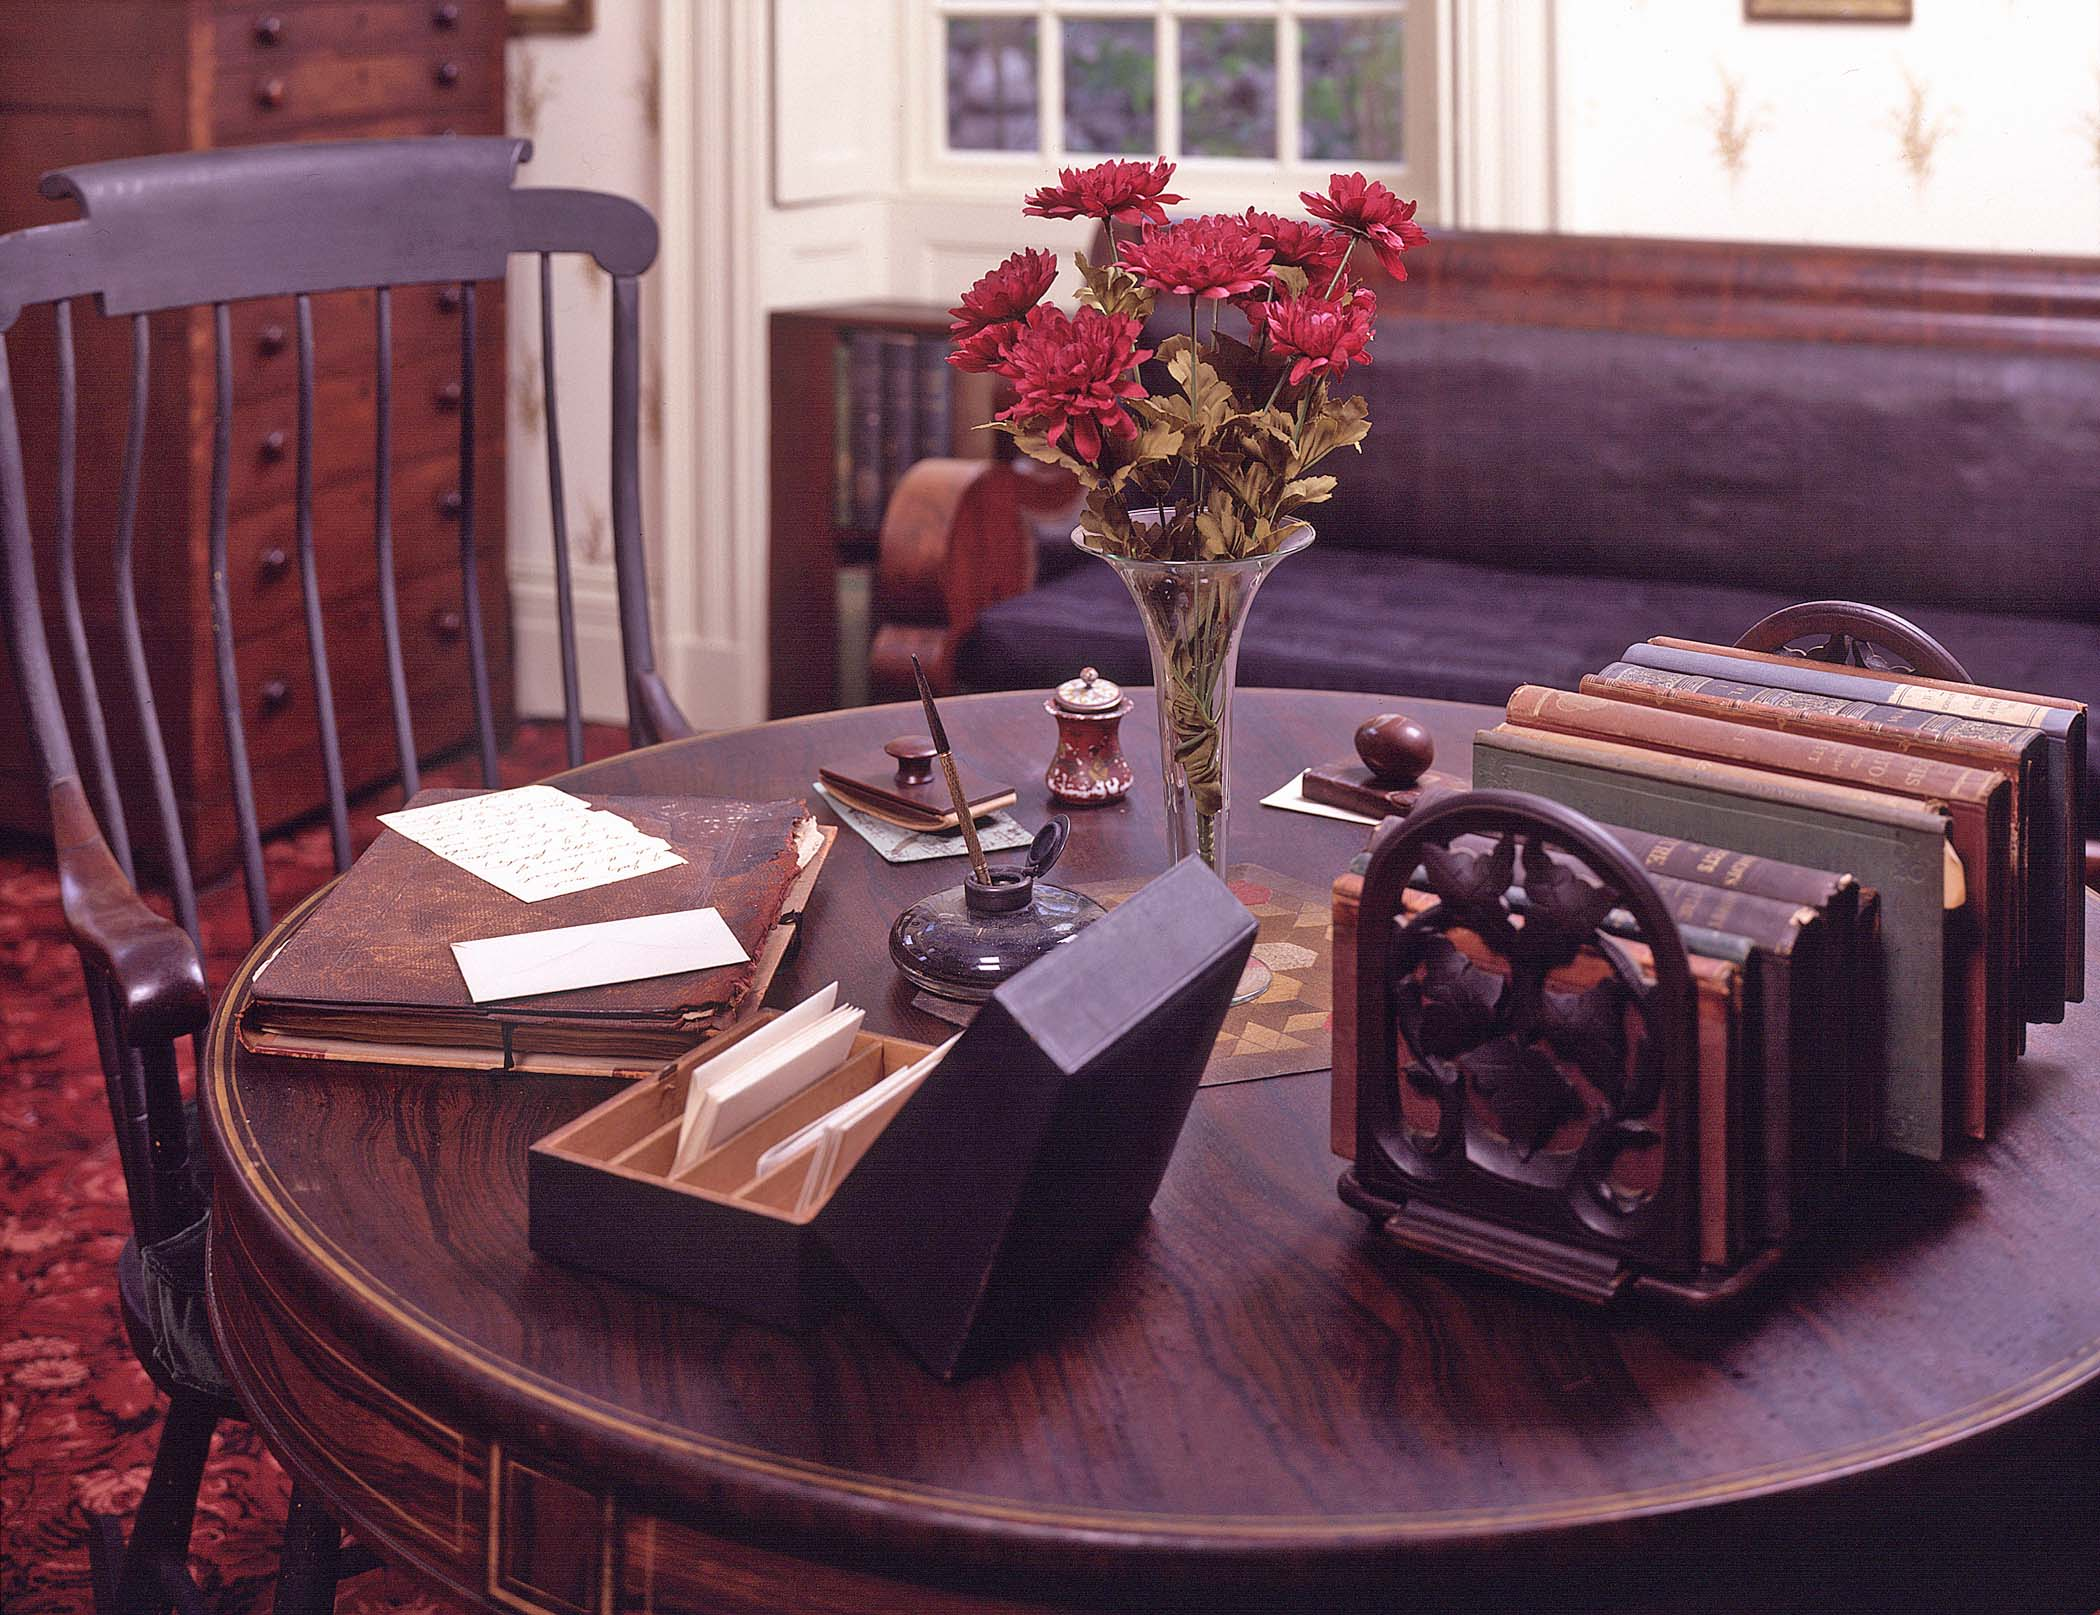 Emerson's Study, photo courtesy of the concord museum